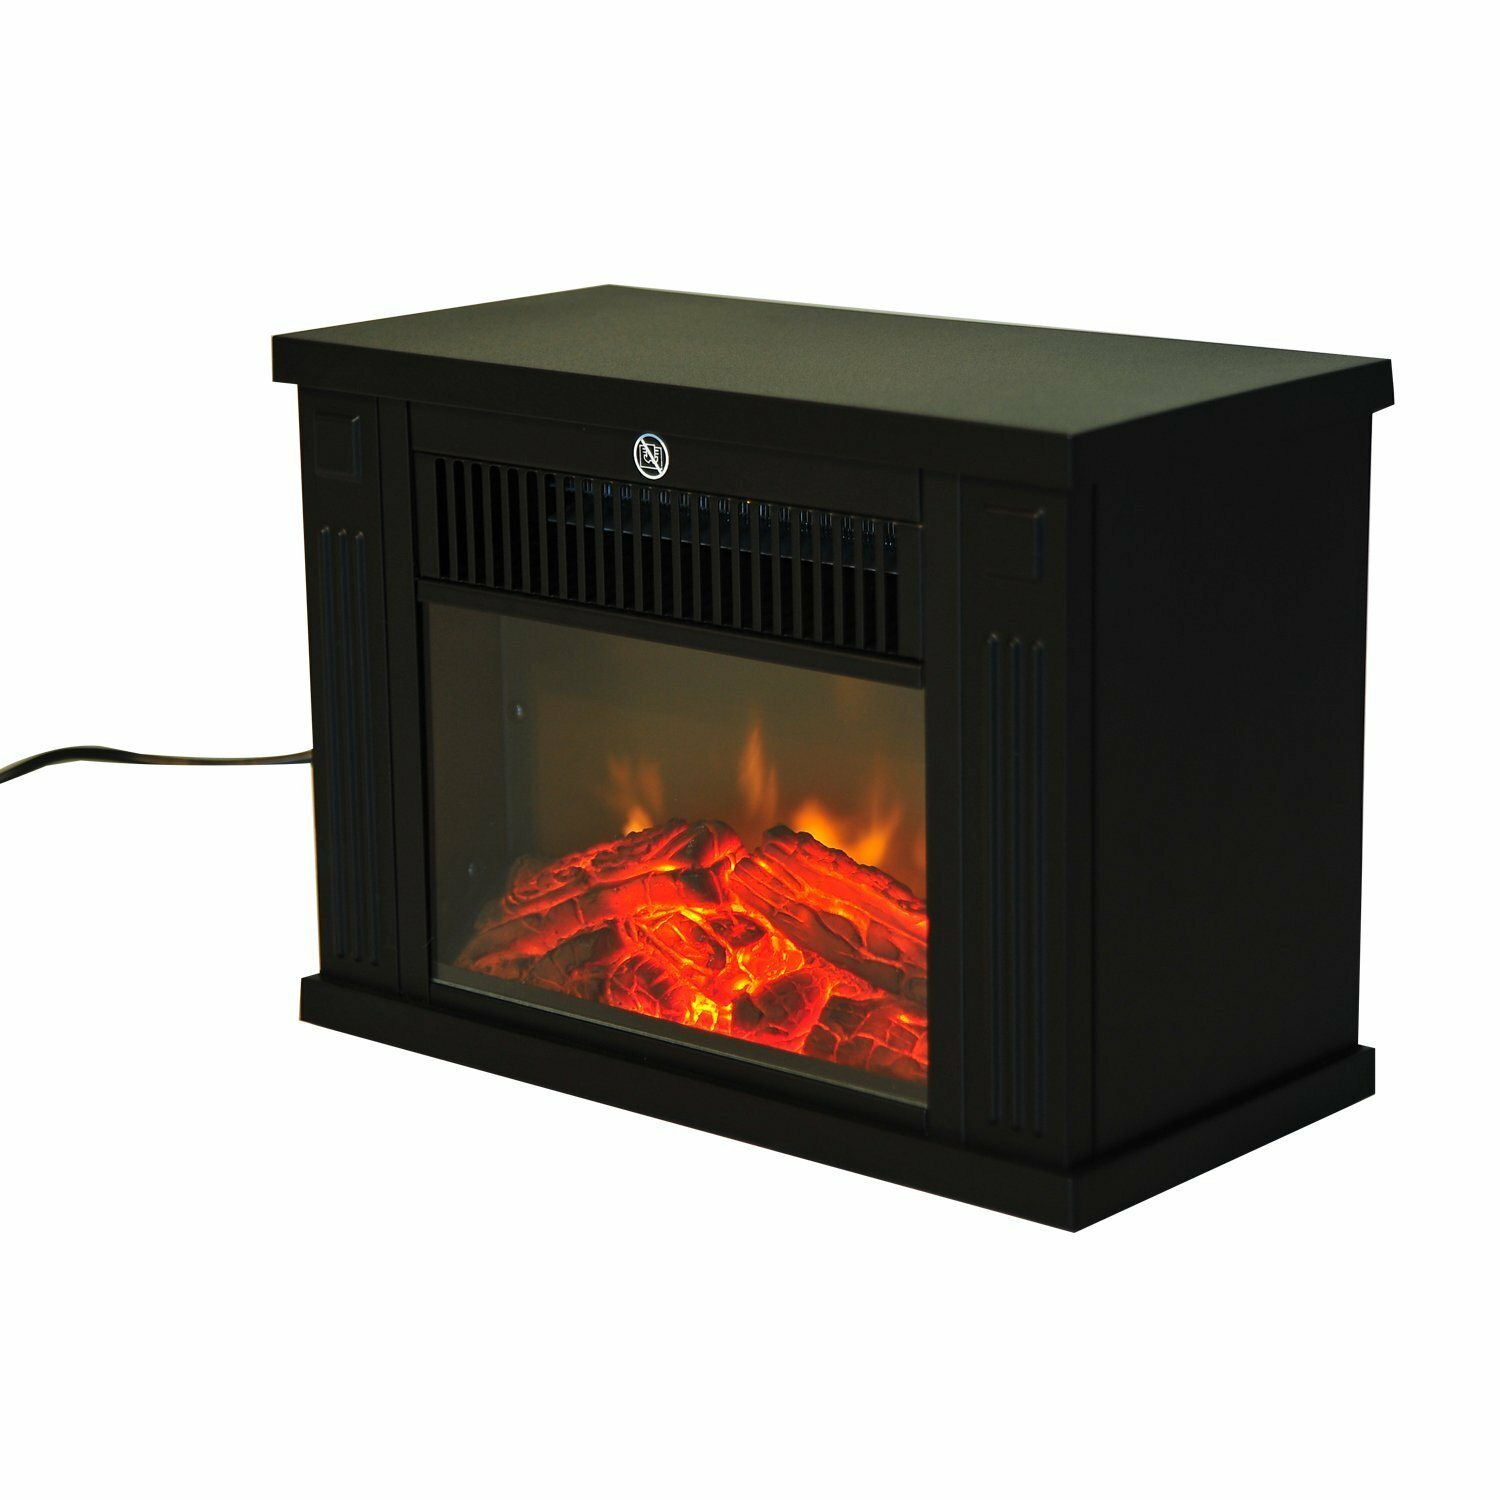 Homcom Freestanding Electric Fireplace Wayfair Uk